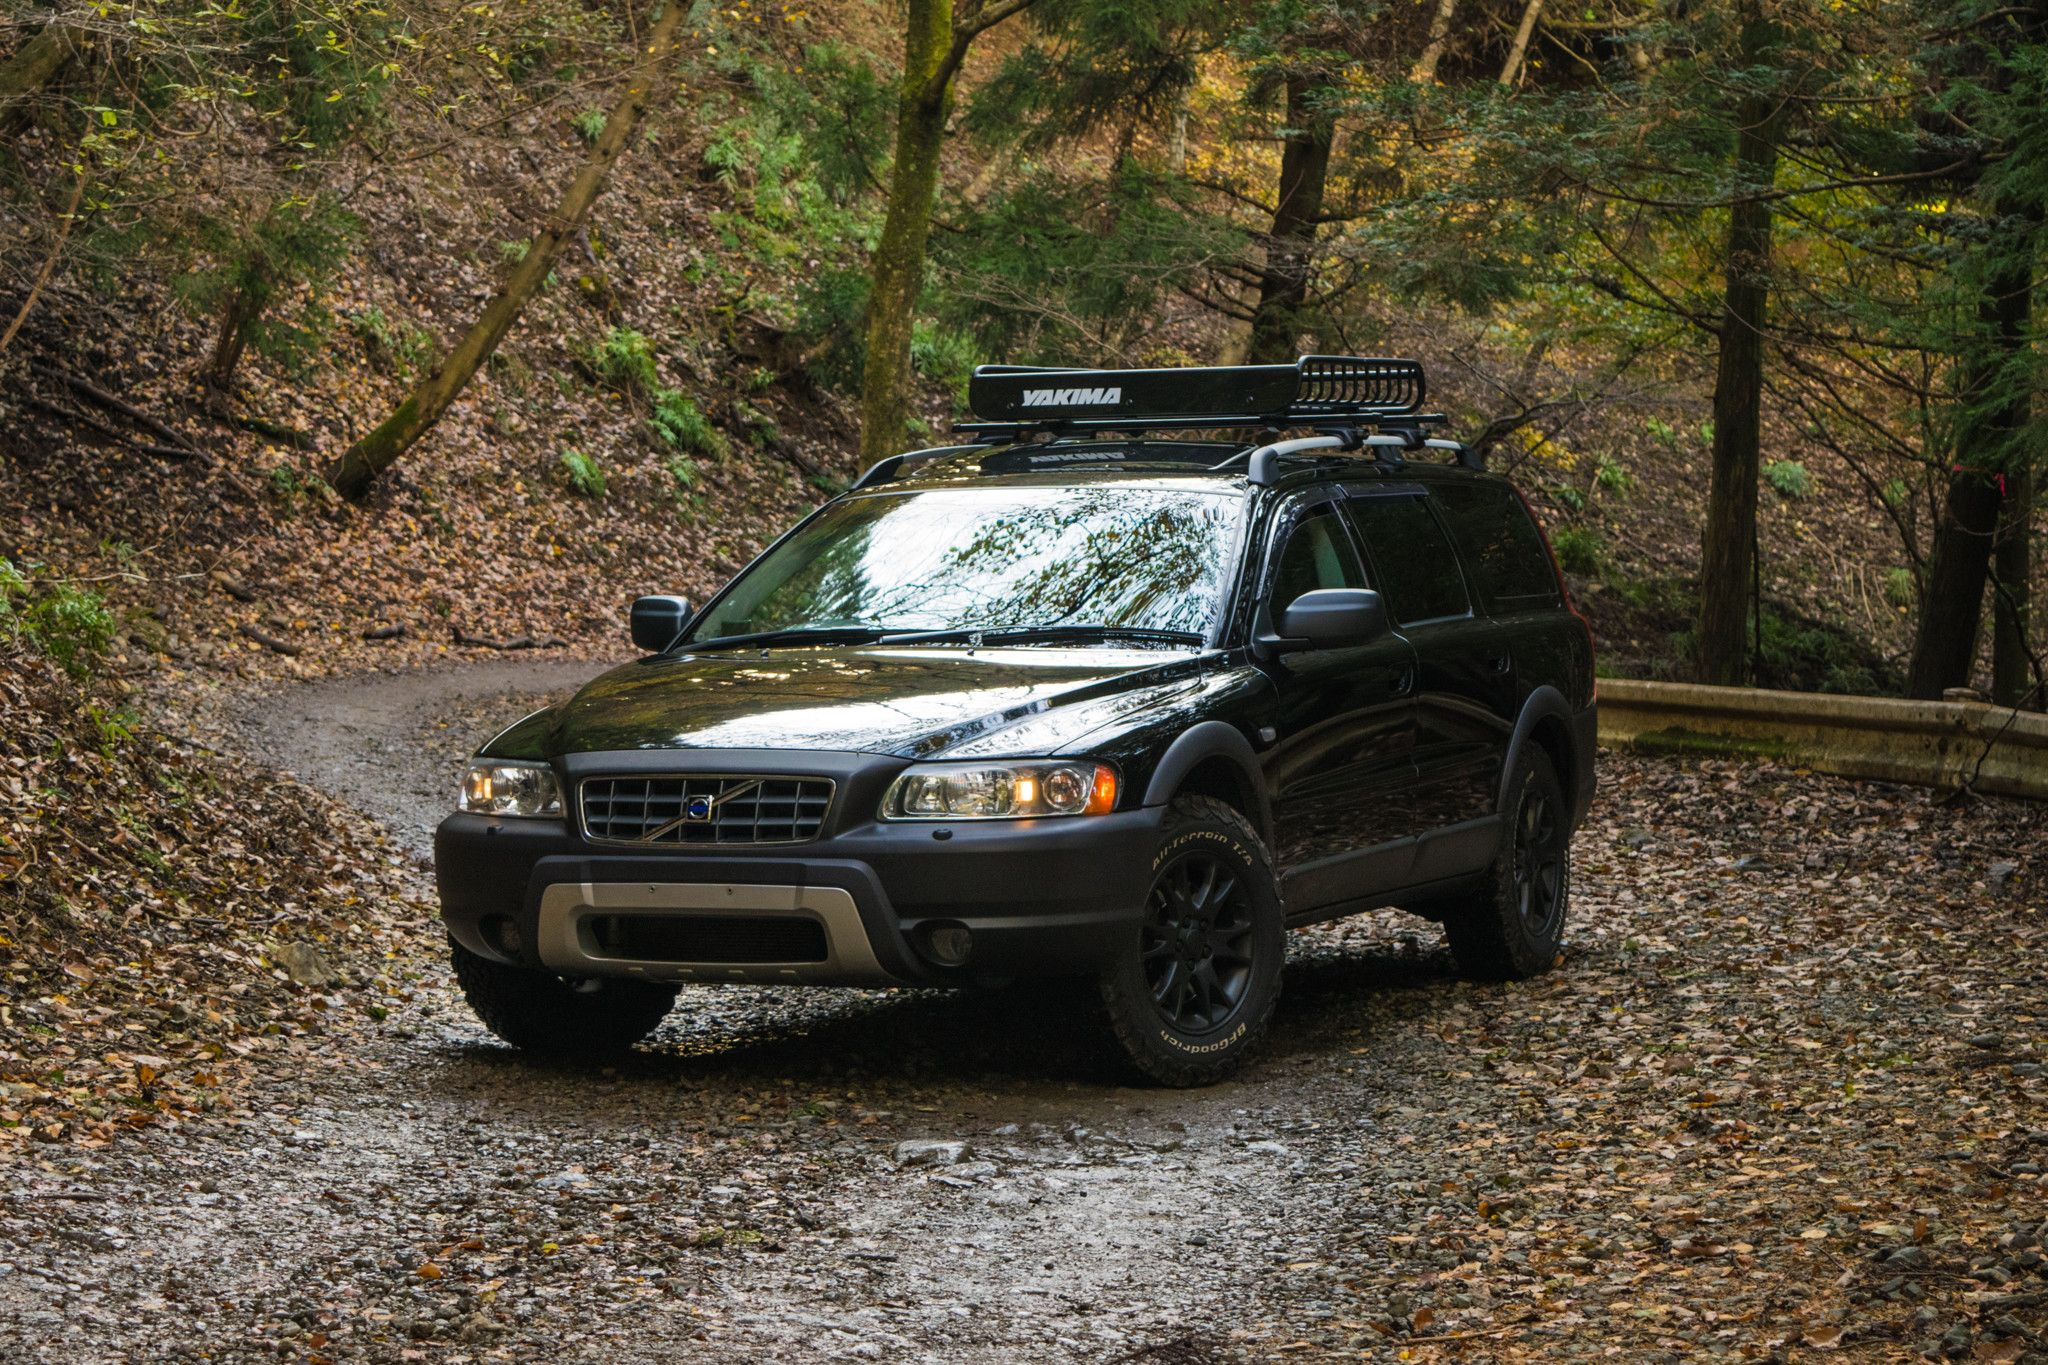 Volvo Xc70 Pinterest V70 And Xc 2004 Cross Country Cars Expedition Vehicle Car Tattoos